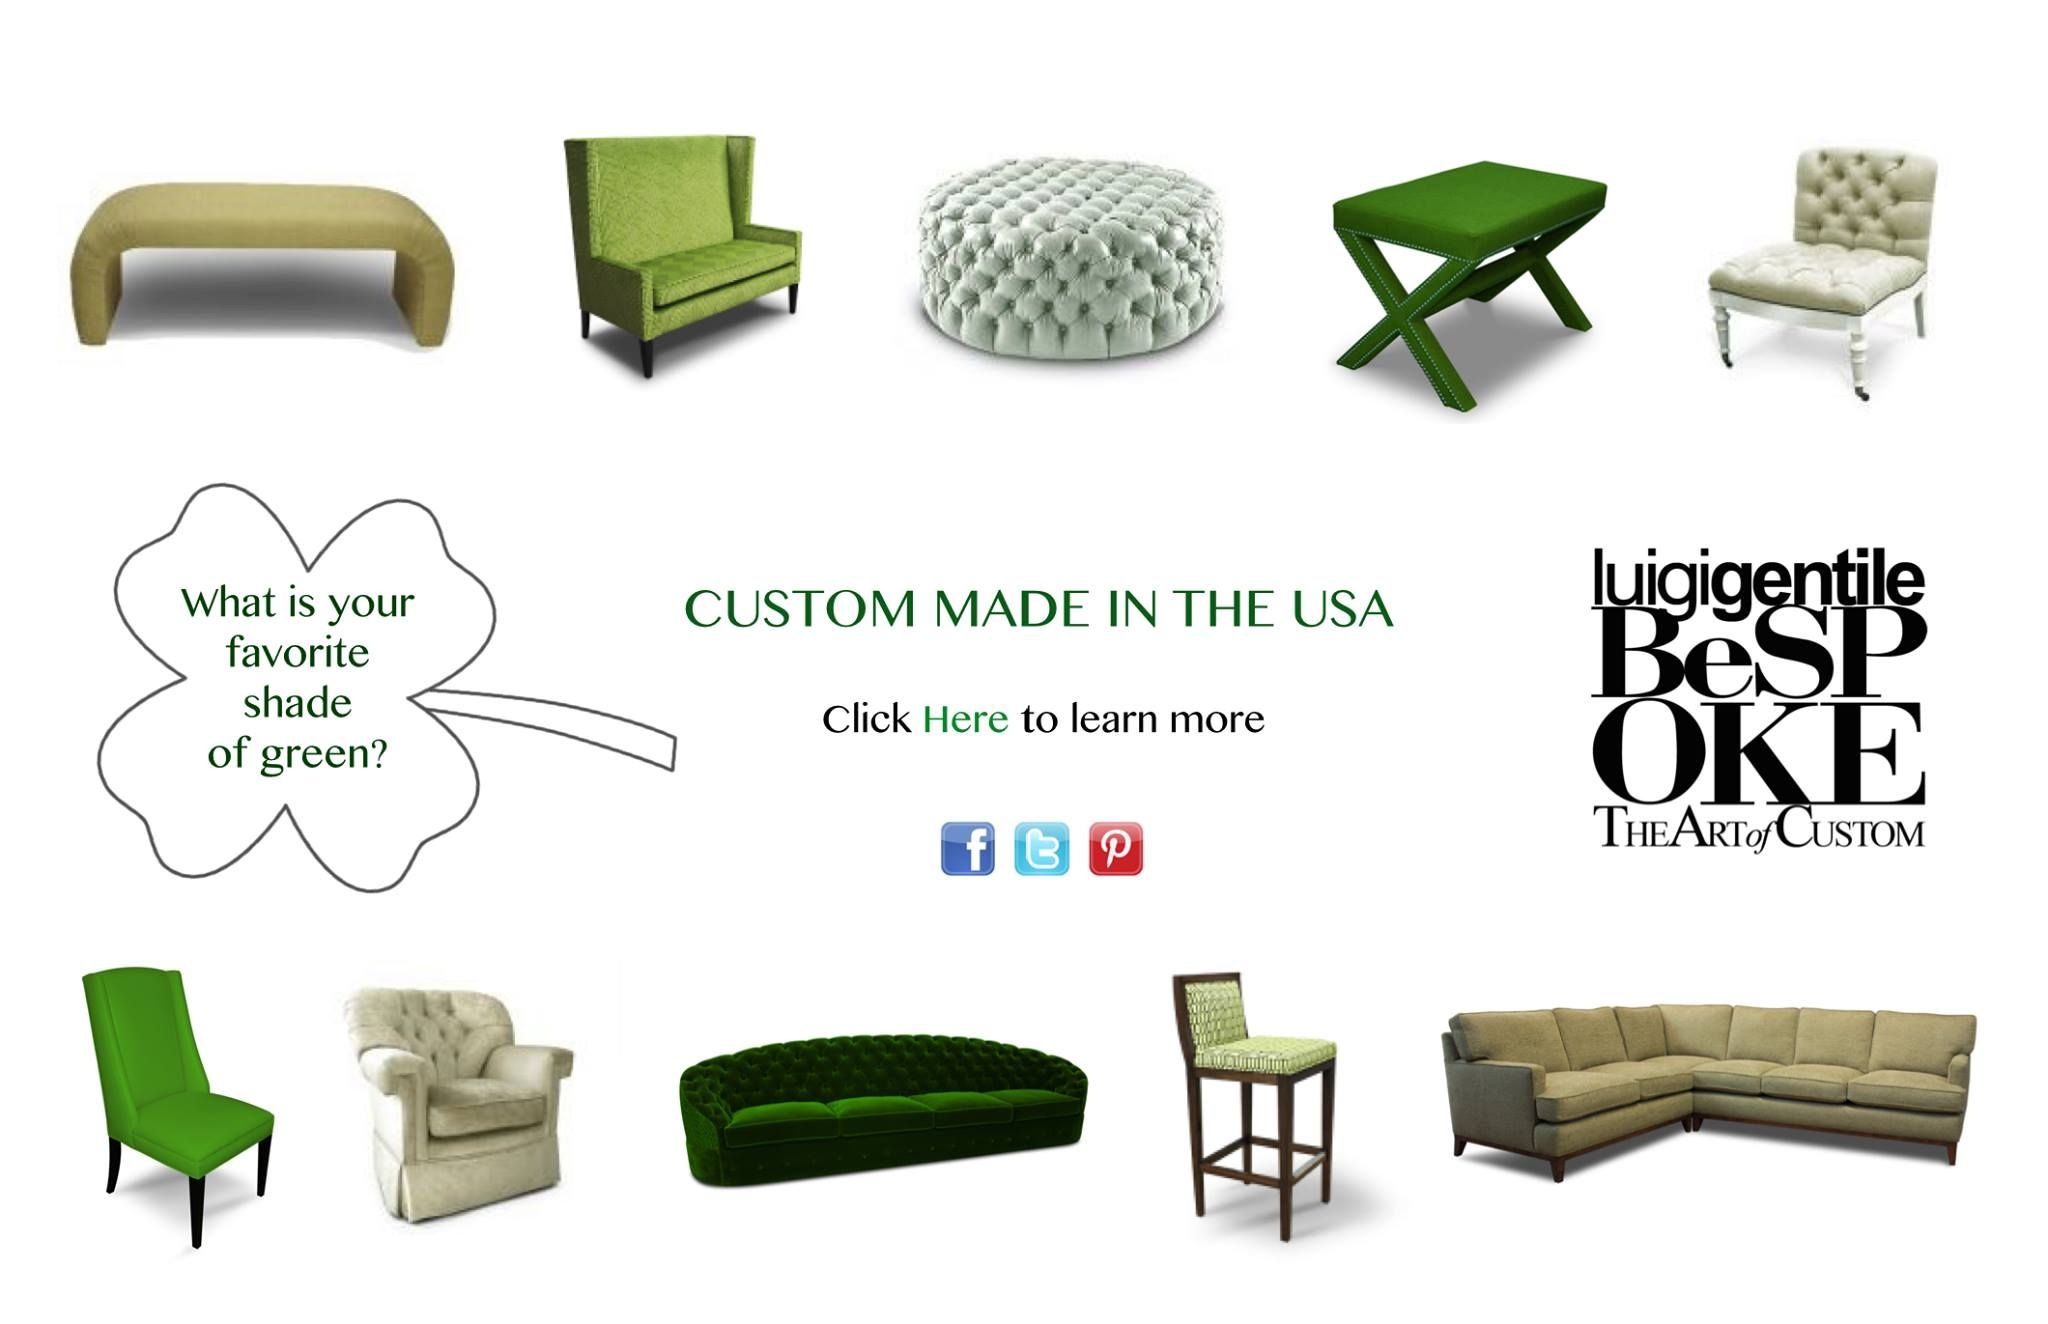 Delicieux Furniture Nyc · What Is Your Favorite Shade Of #GREEN? #stpatricksday  #bespokebyluigigentile #custommade #